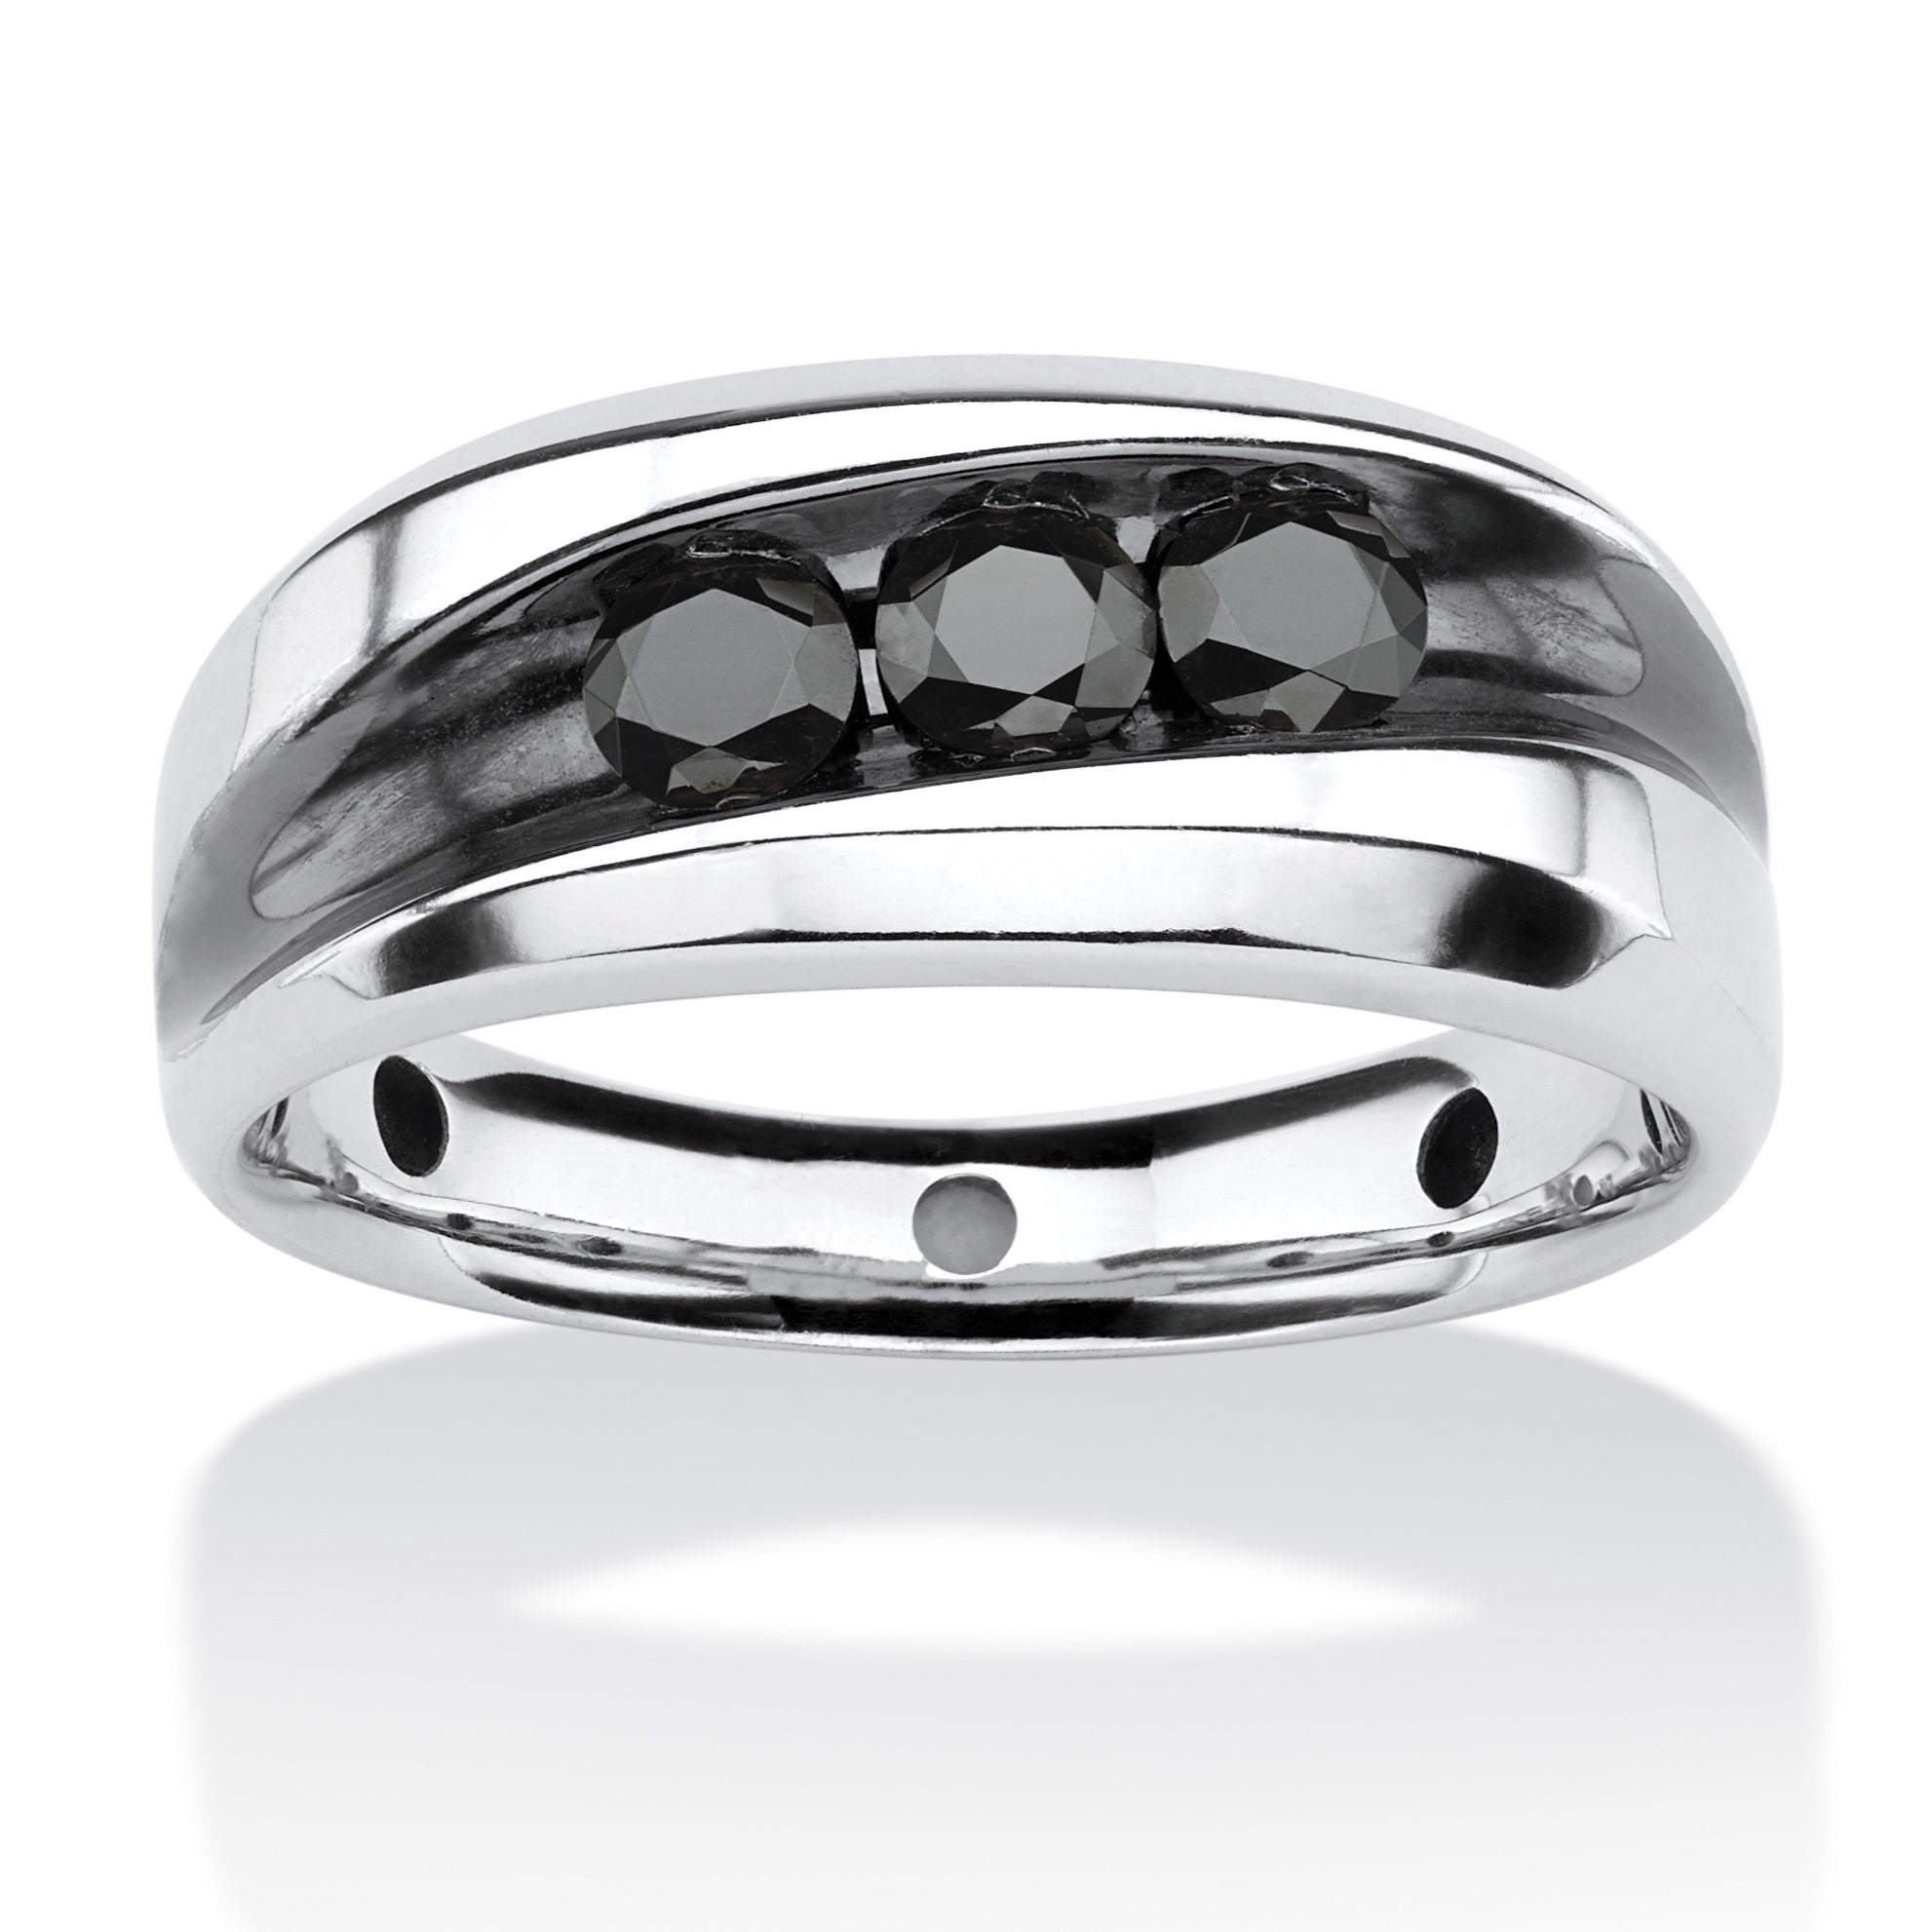 Men S 3 4 Tcw Channel Set Black Diamond Ring In Platinum Over Sterling Silver Overstock 8985219